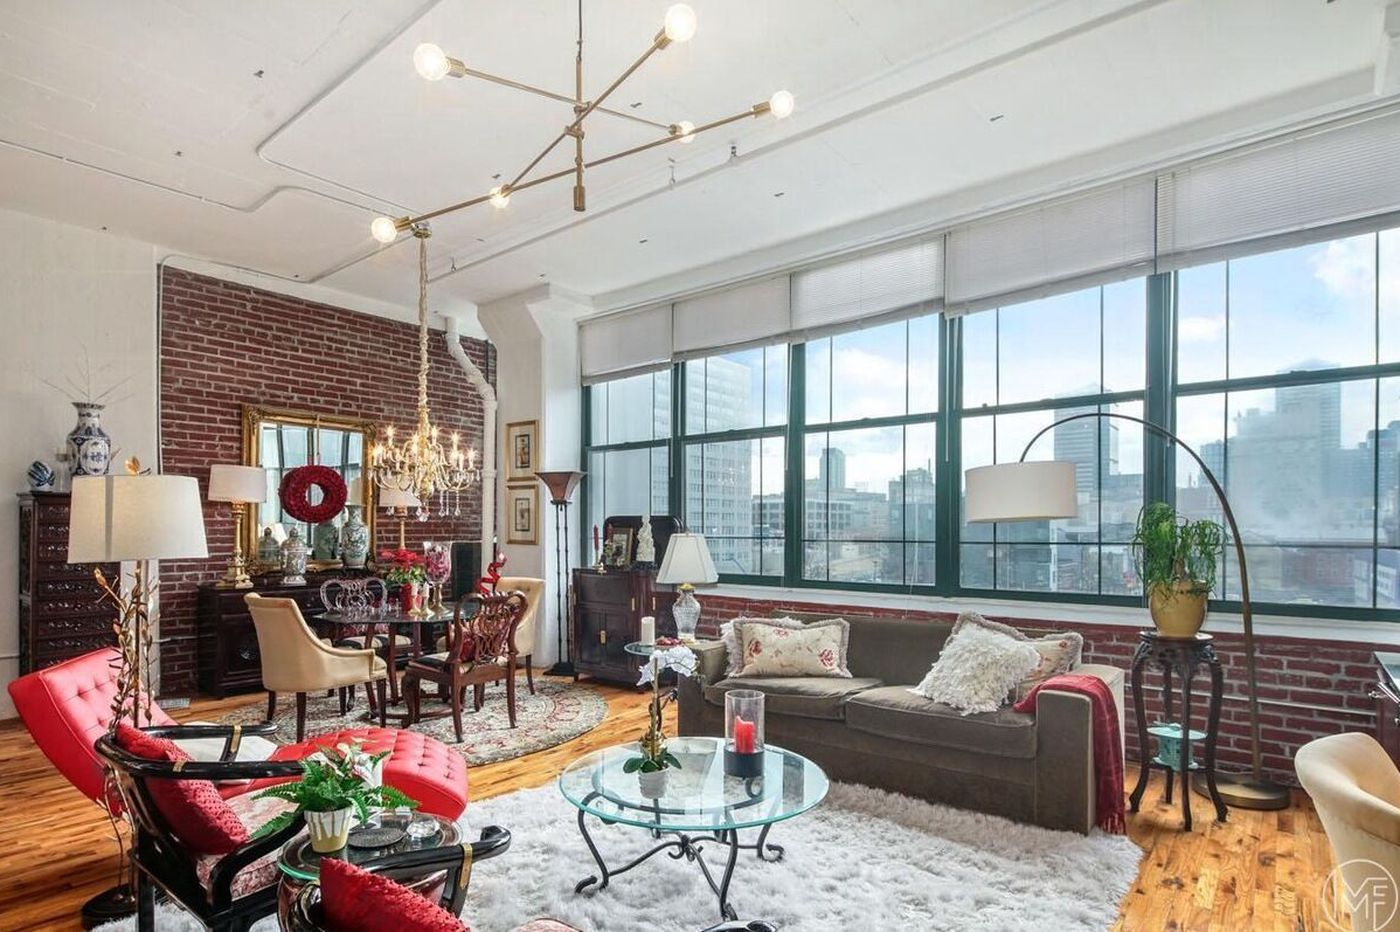 On the market: One-bedroom loft in a former Philly shoe factory